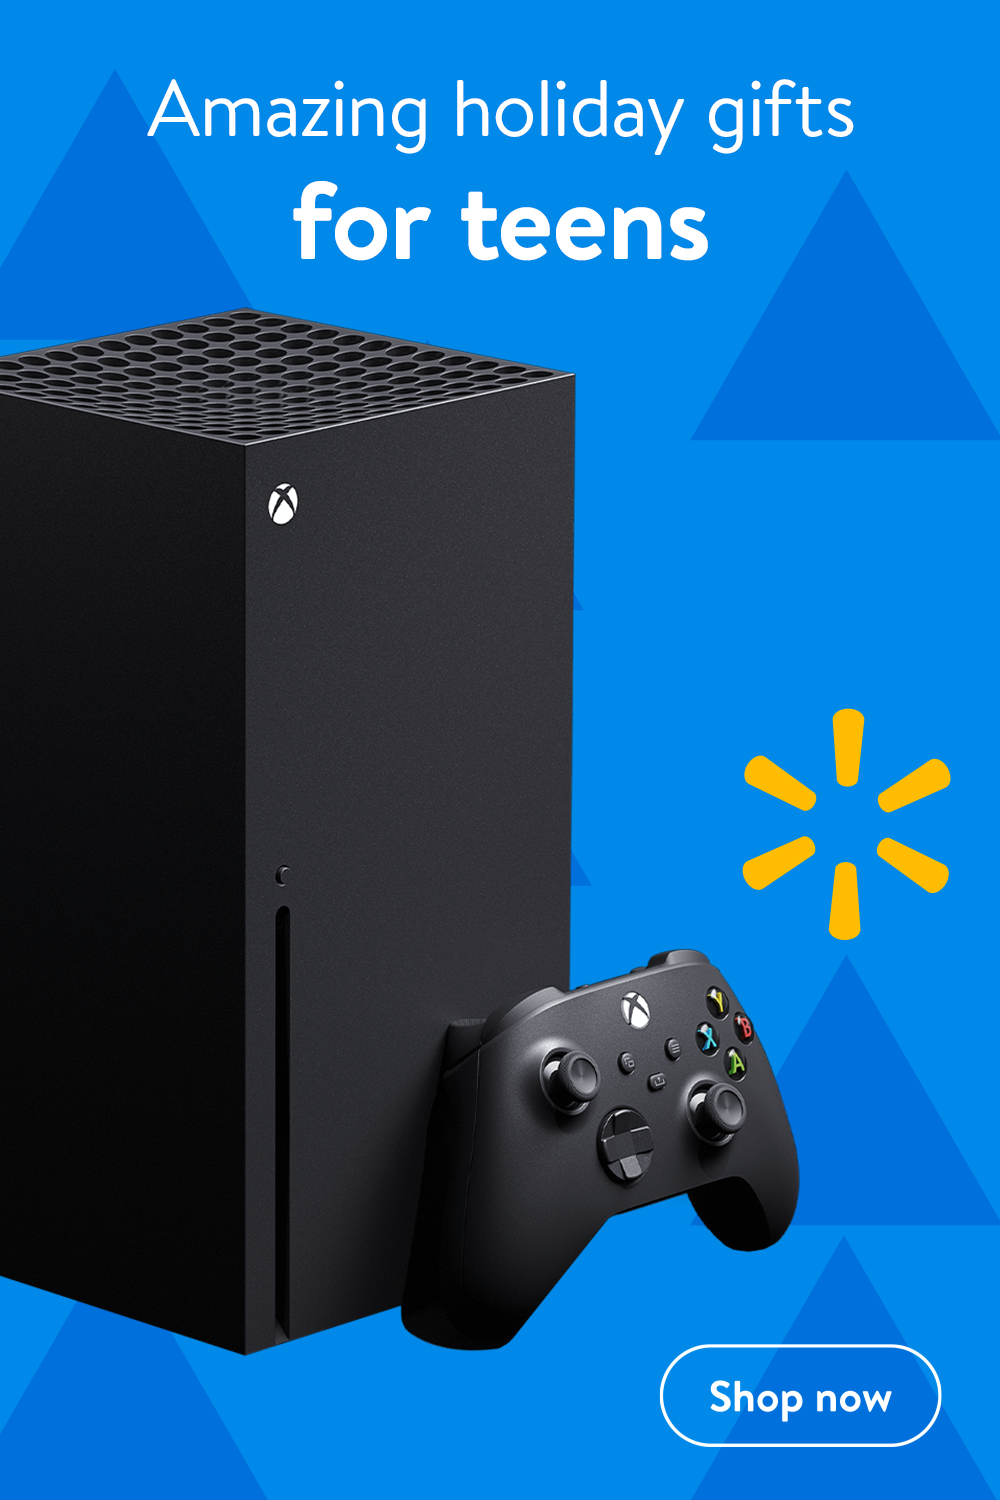 Browse & shop brands at Walmart like onn., Spalding & more. Find gifts that will wow teens with the help of​ our Gift Finder. You'll find this year's best gifts, from gadgets to games, at low prices.​